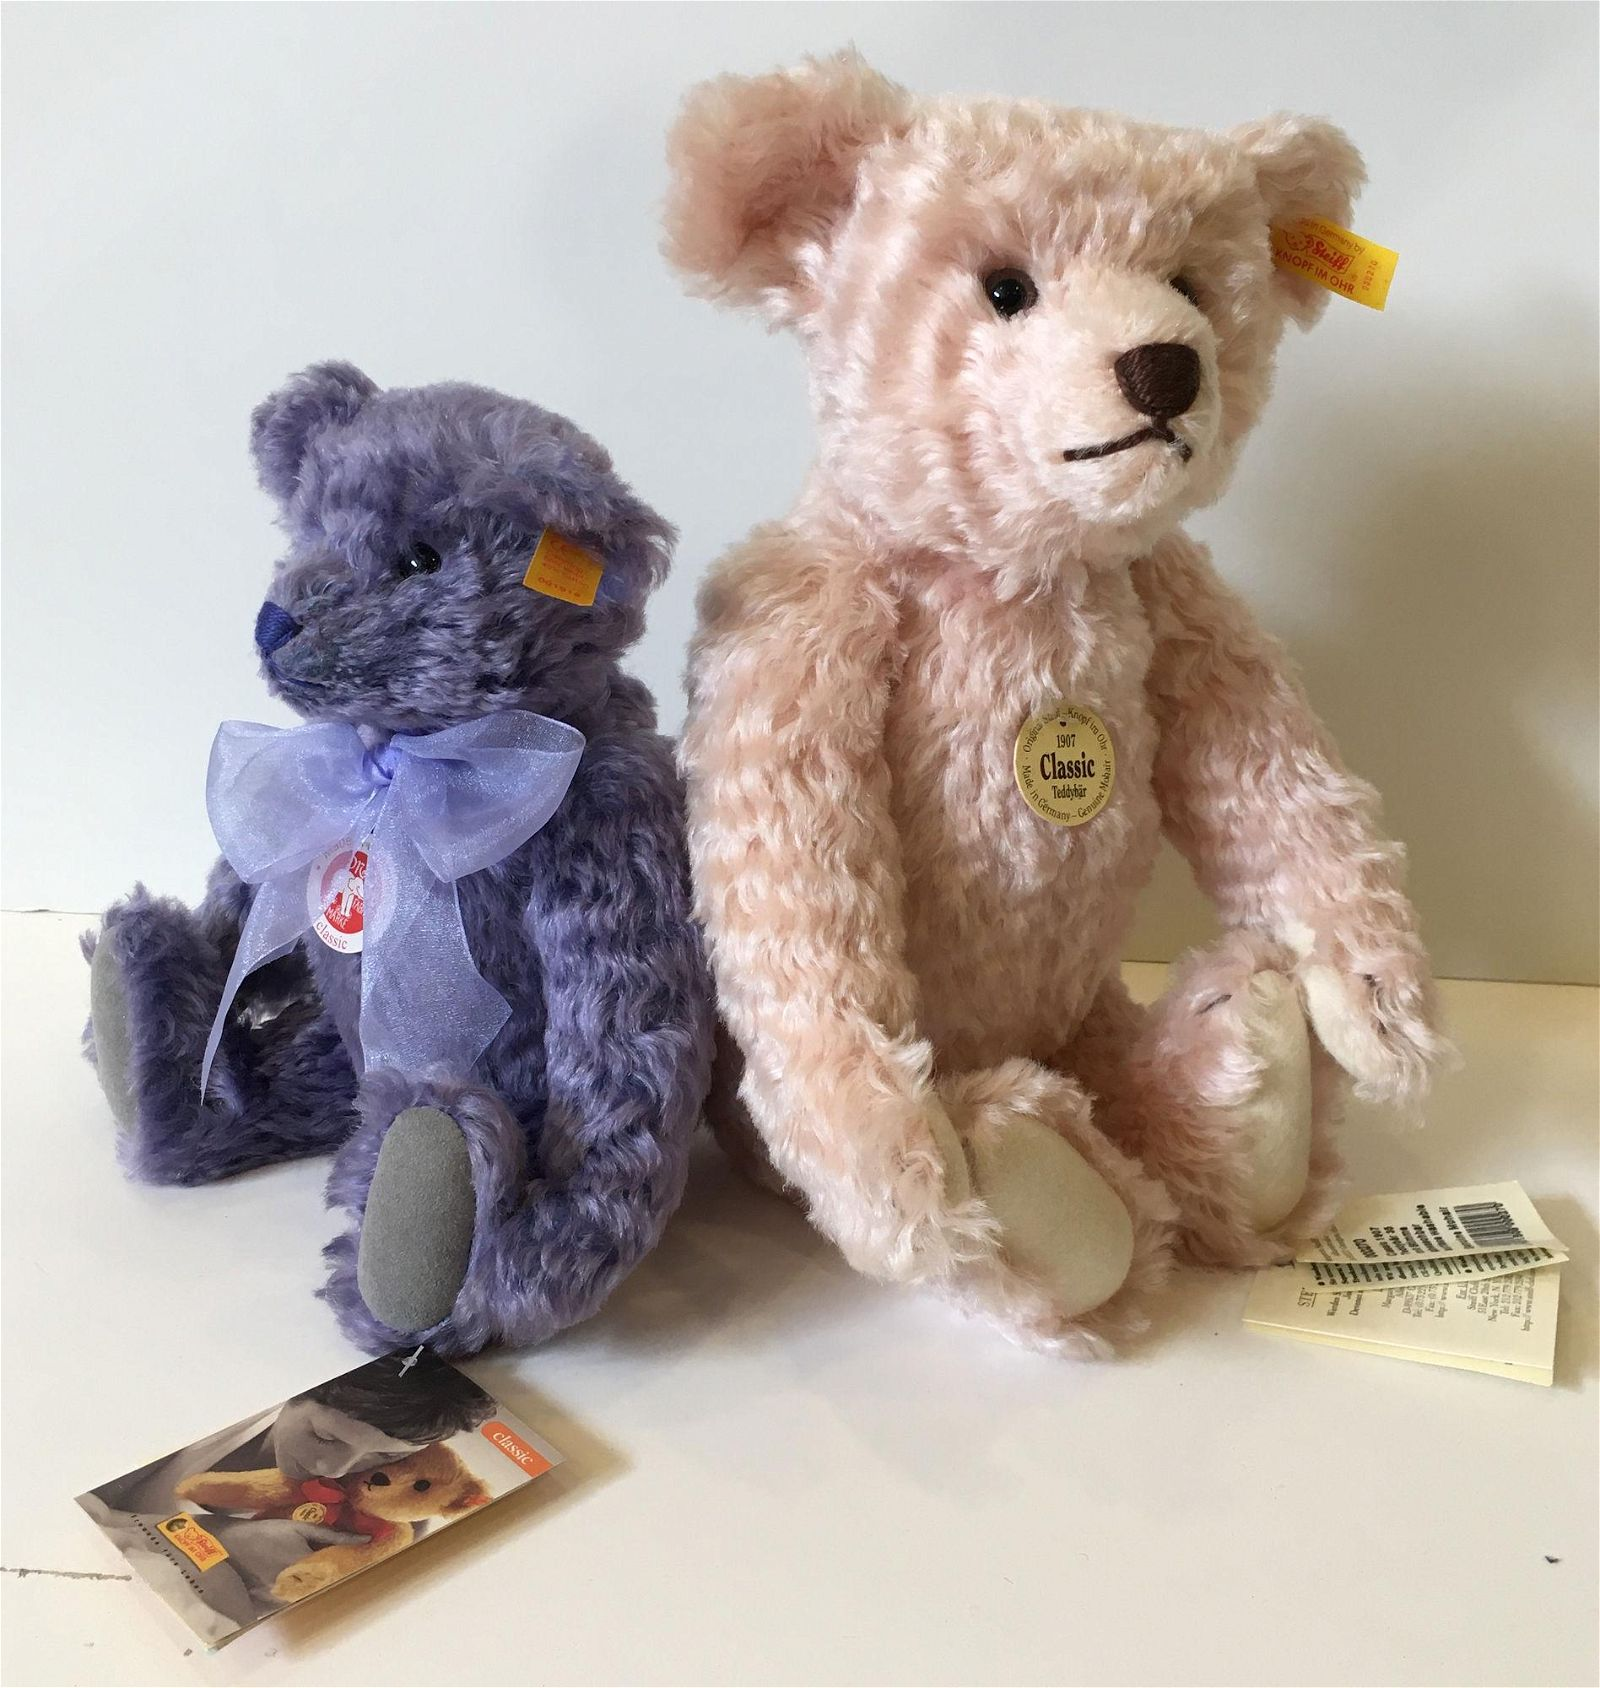 "(2) STEIFF CLASSIC TEDDY BEARS. INCLUDES 14"" CURLY PINK"